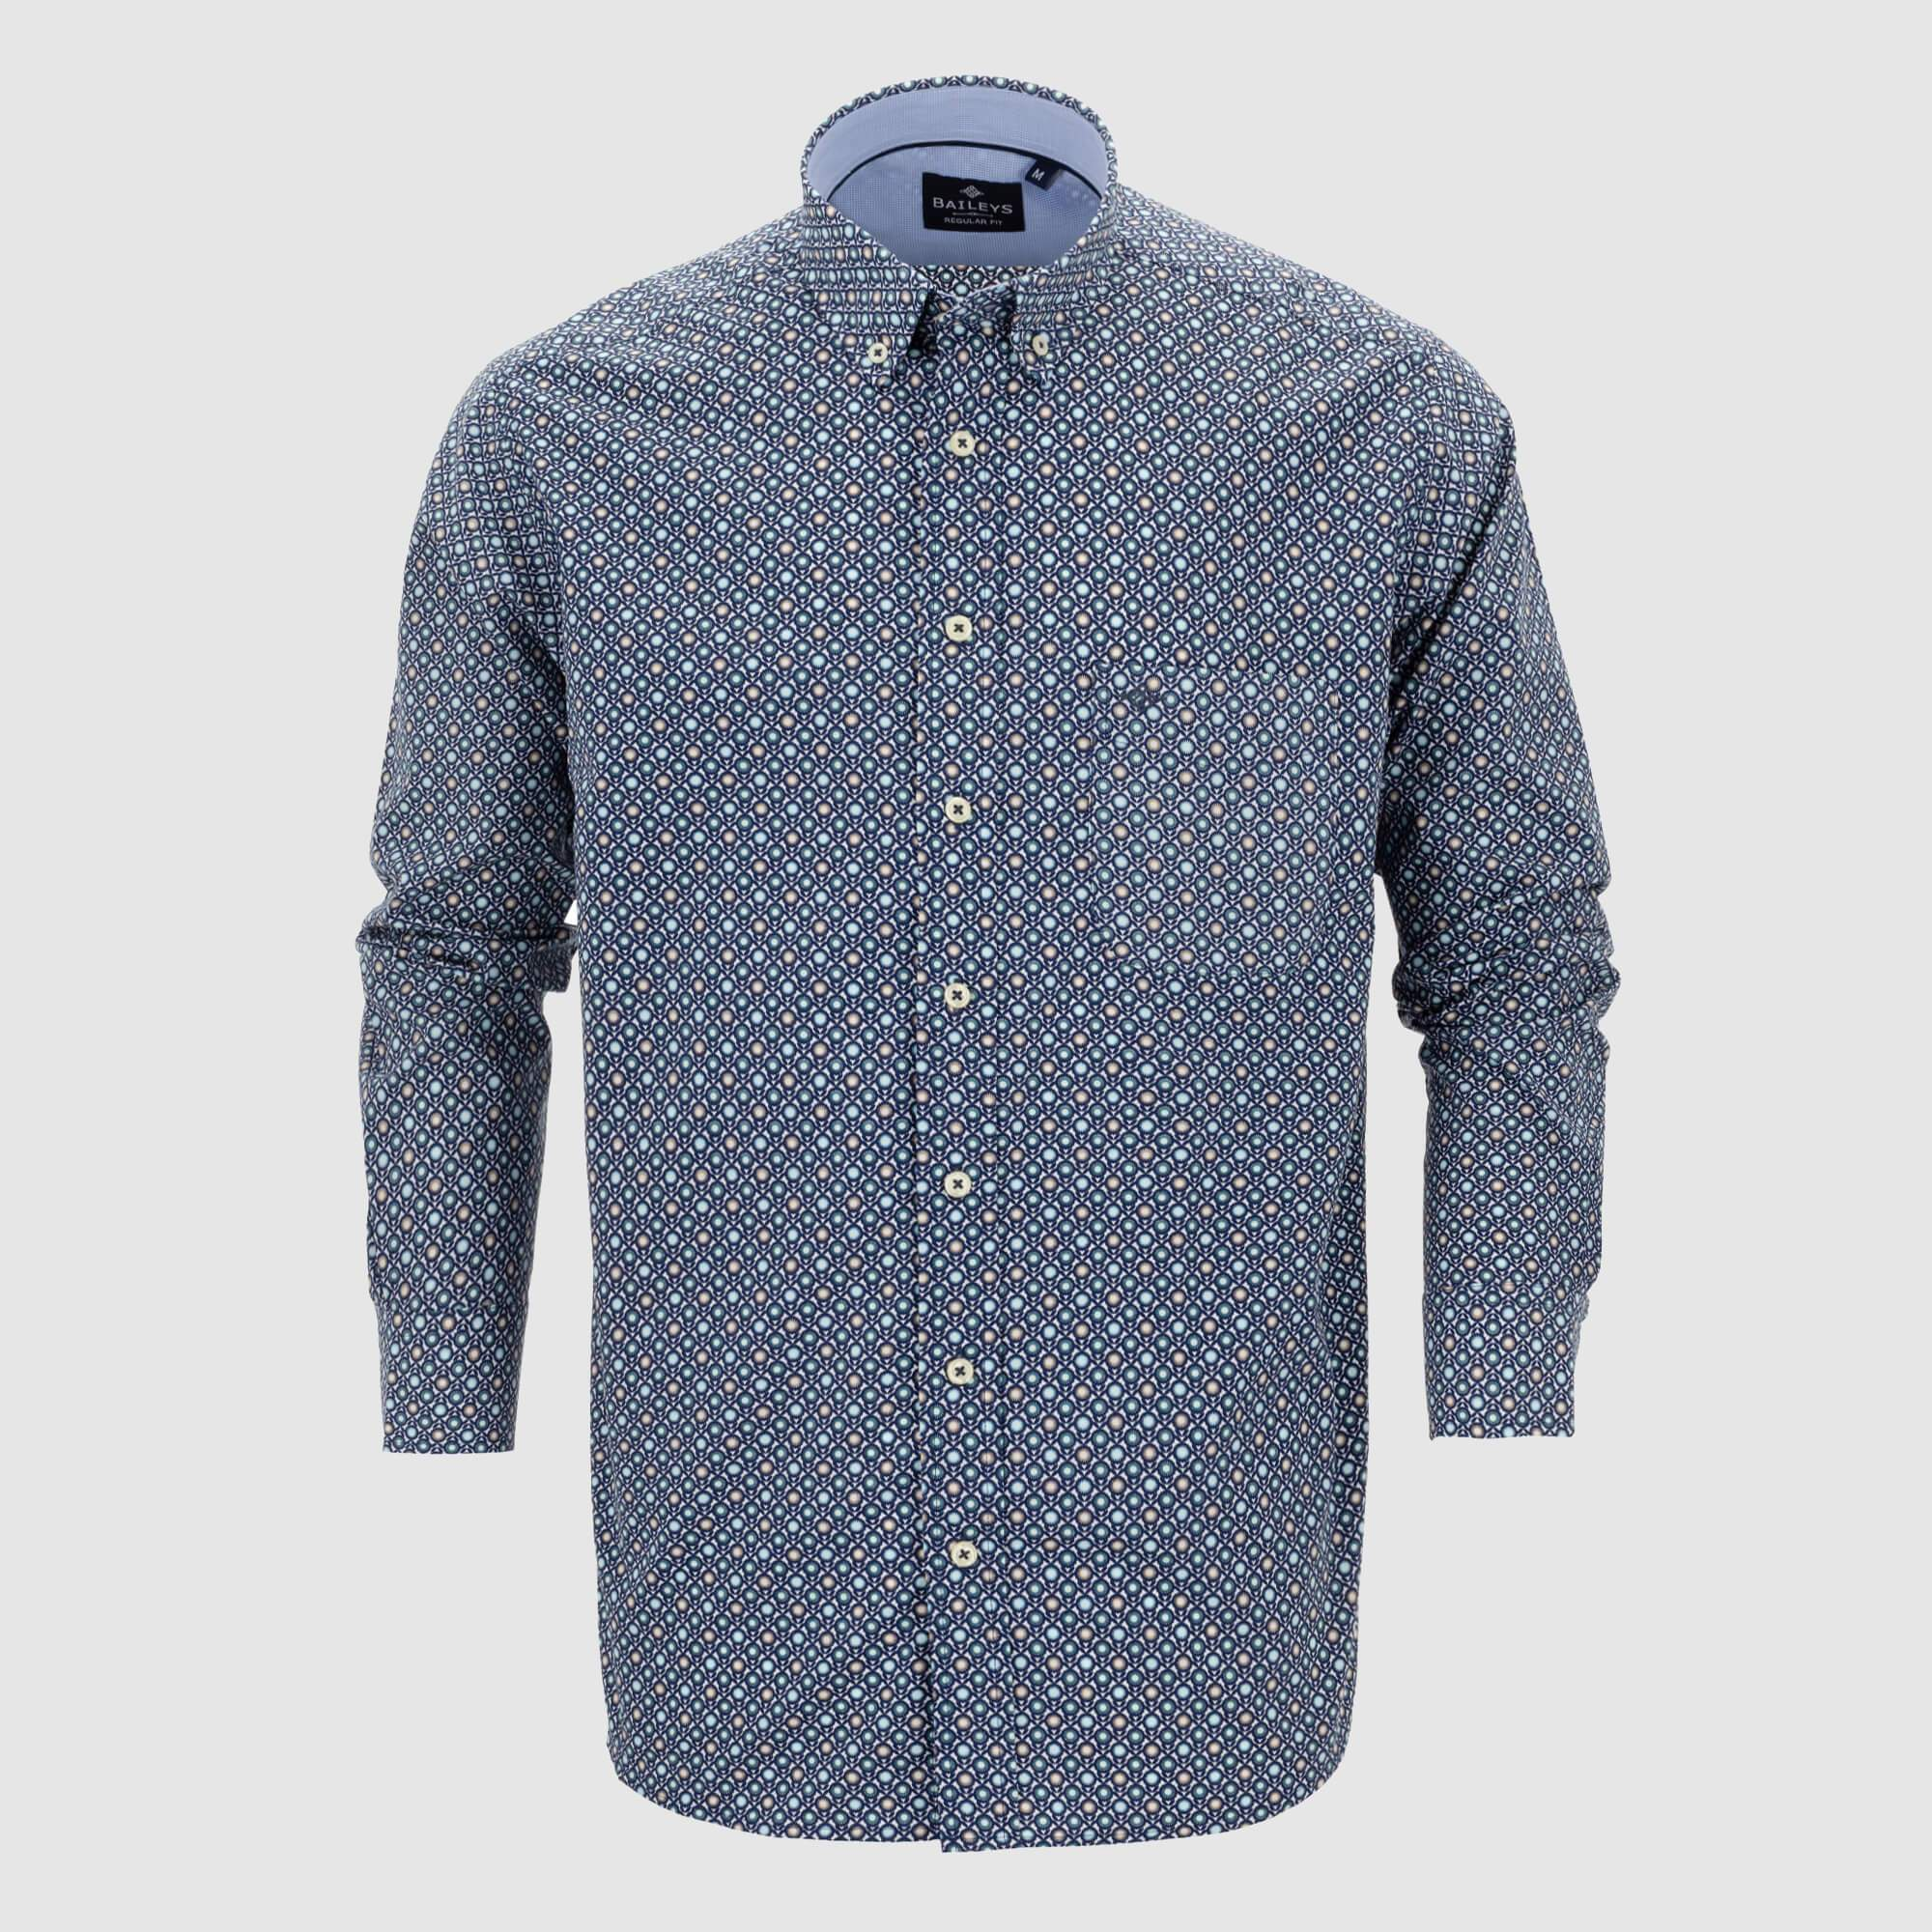 Camisa estampada regular fit 107689